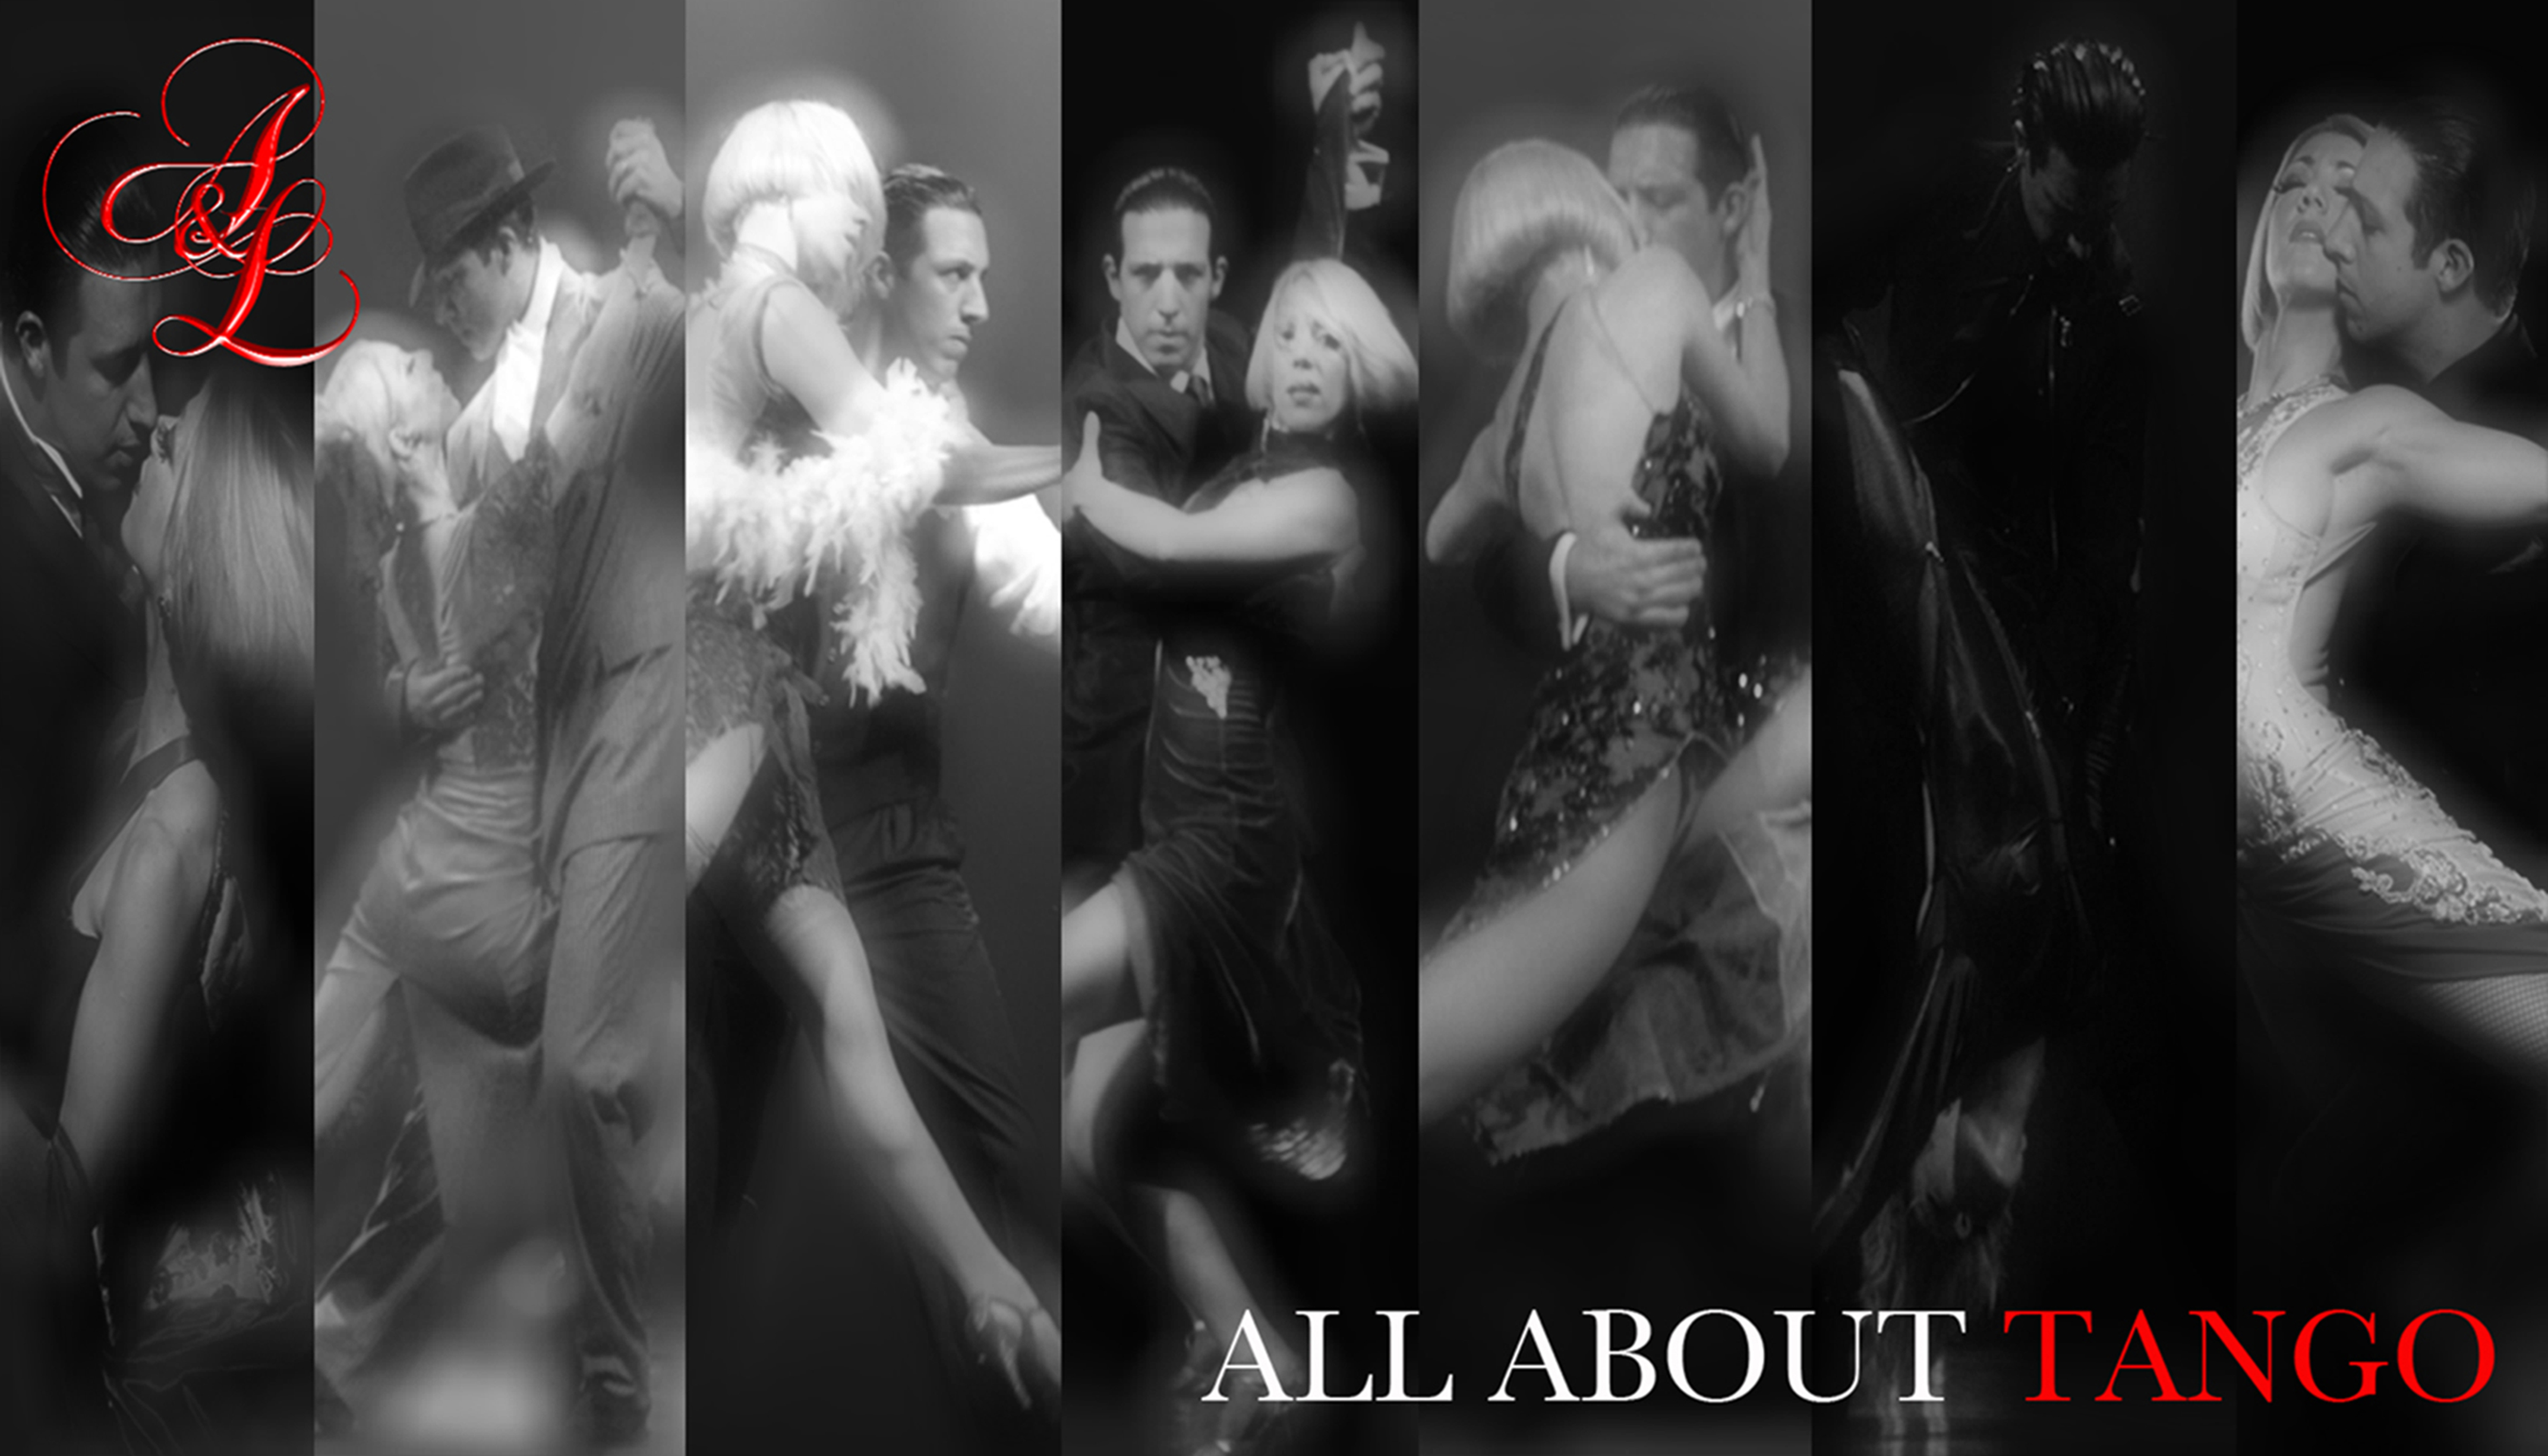 All About Tango: In this show we exp